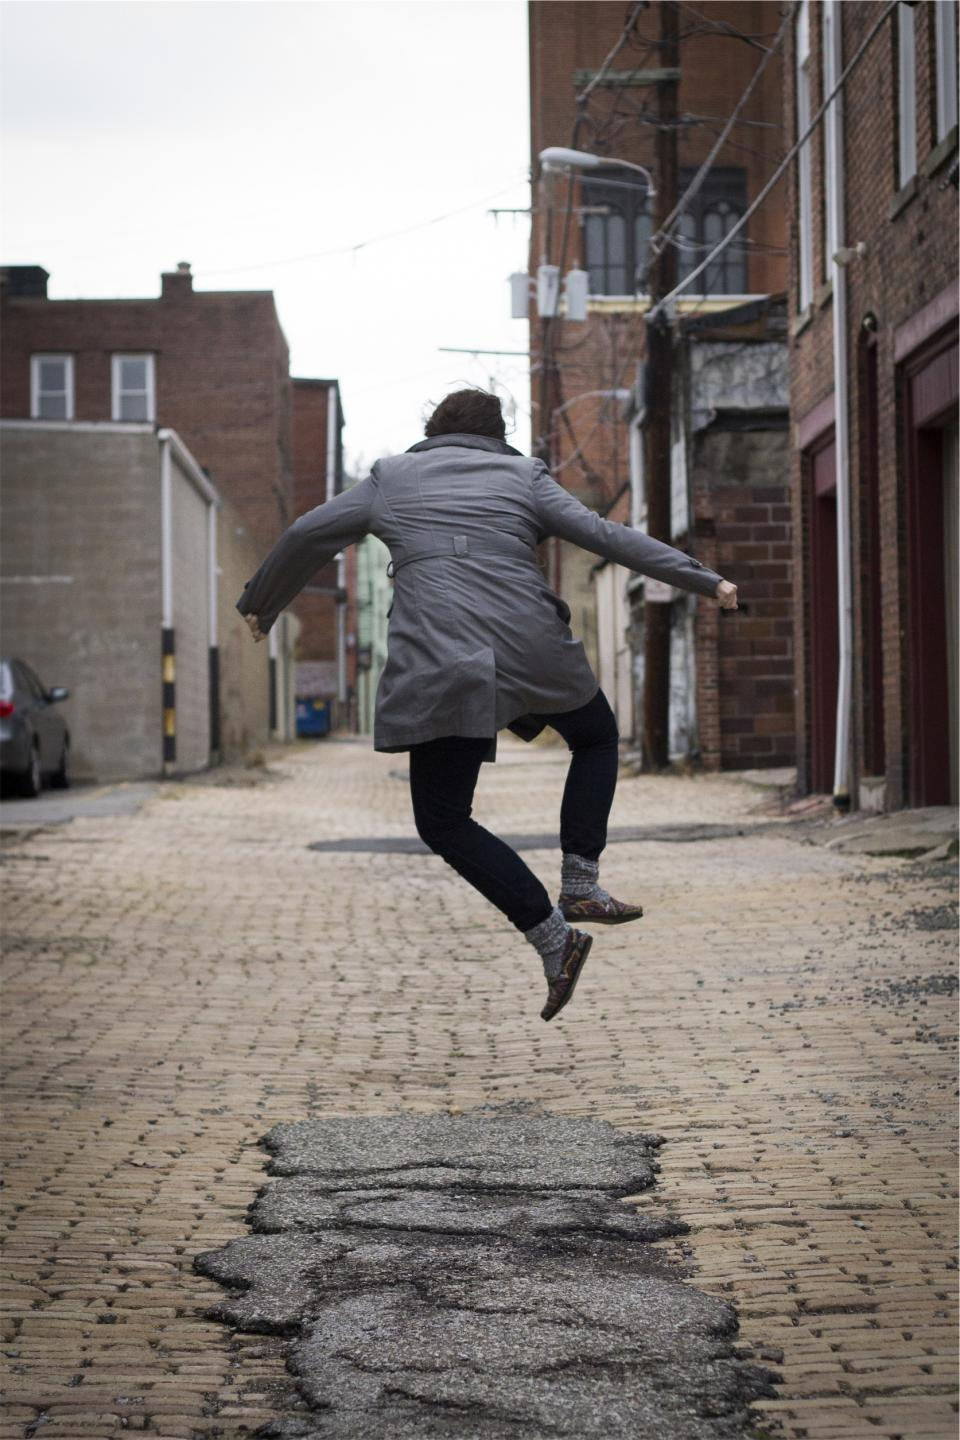 girl, jumping, happy, people, woman, jacket, pants, socks, shoes, cobblestone, alley, pavement